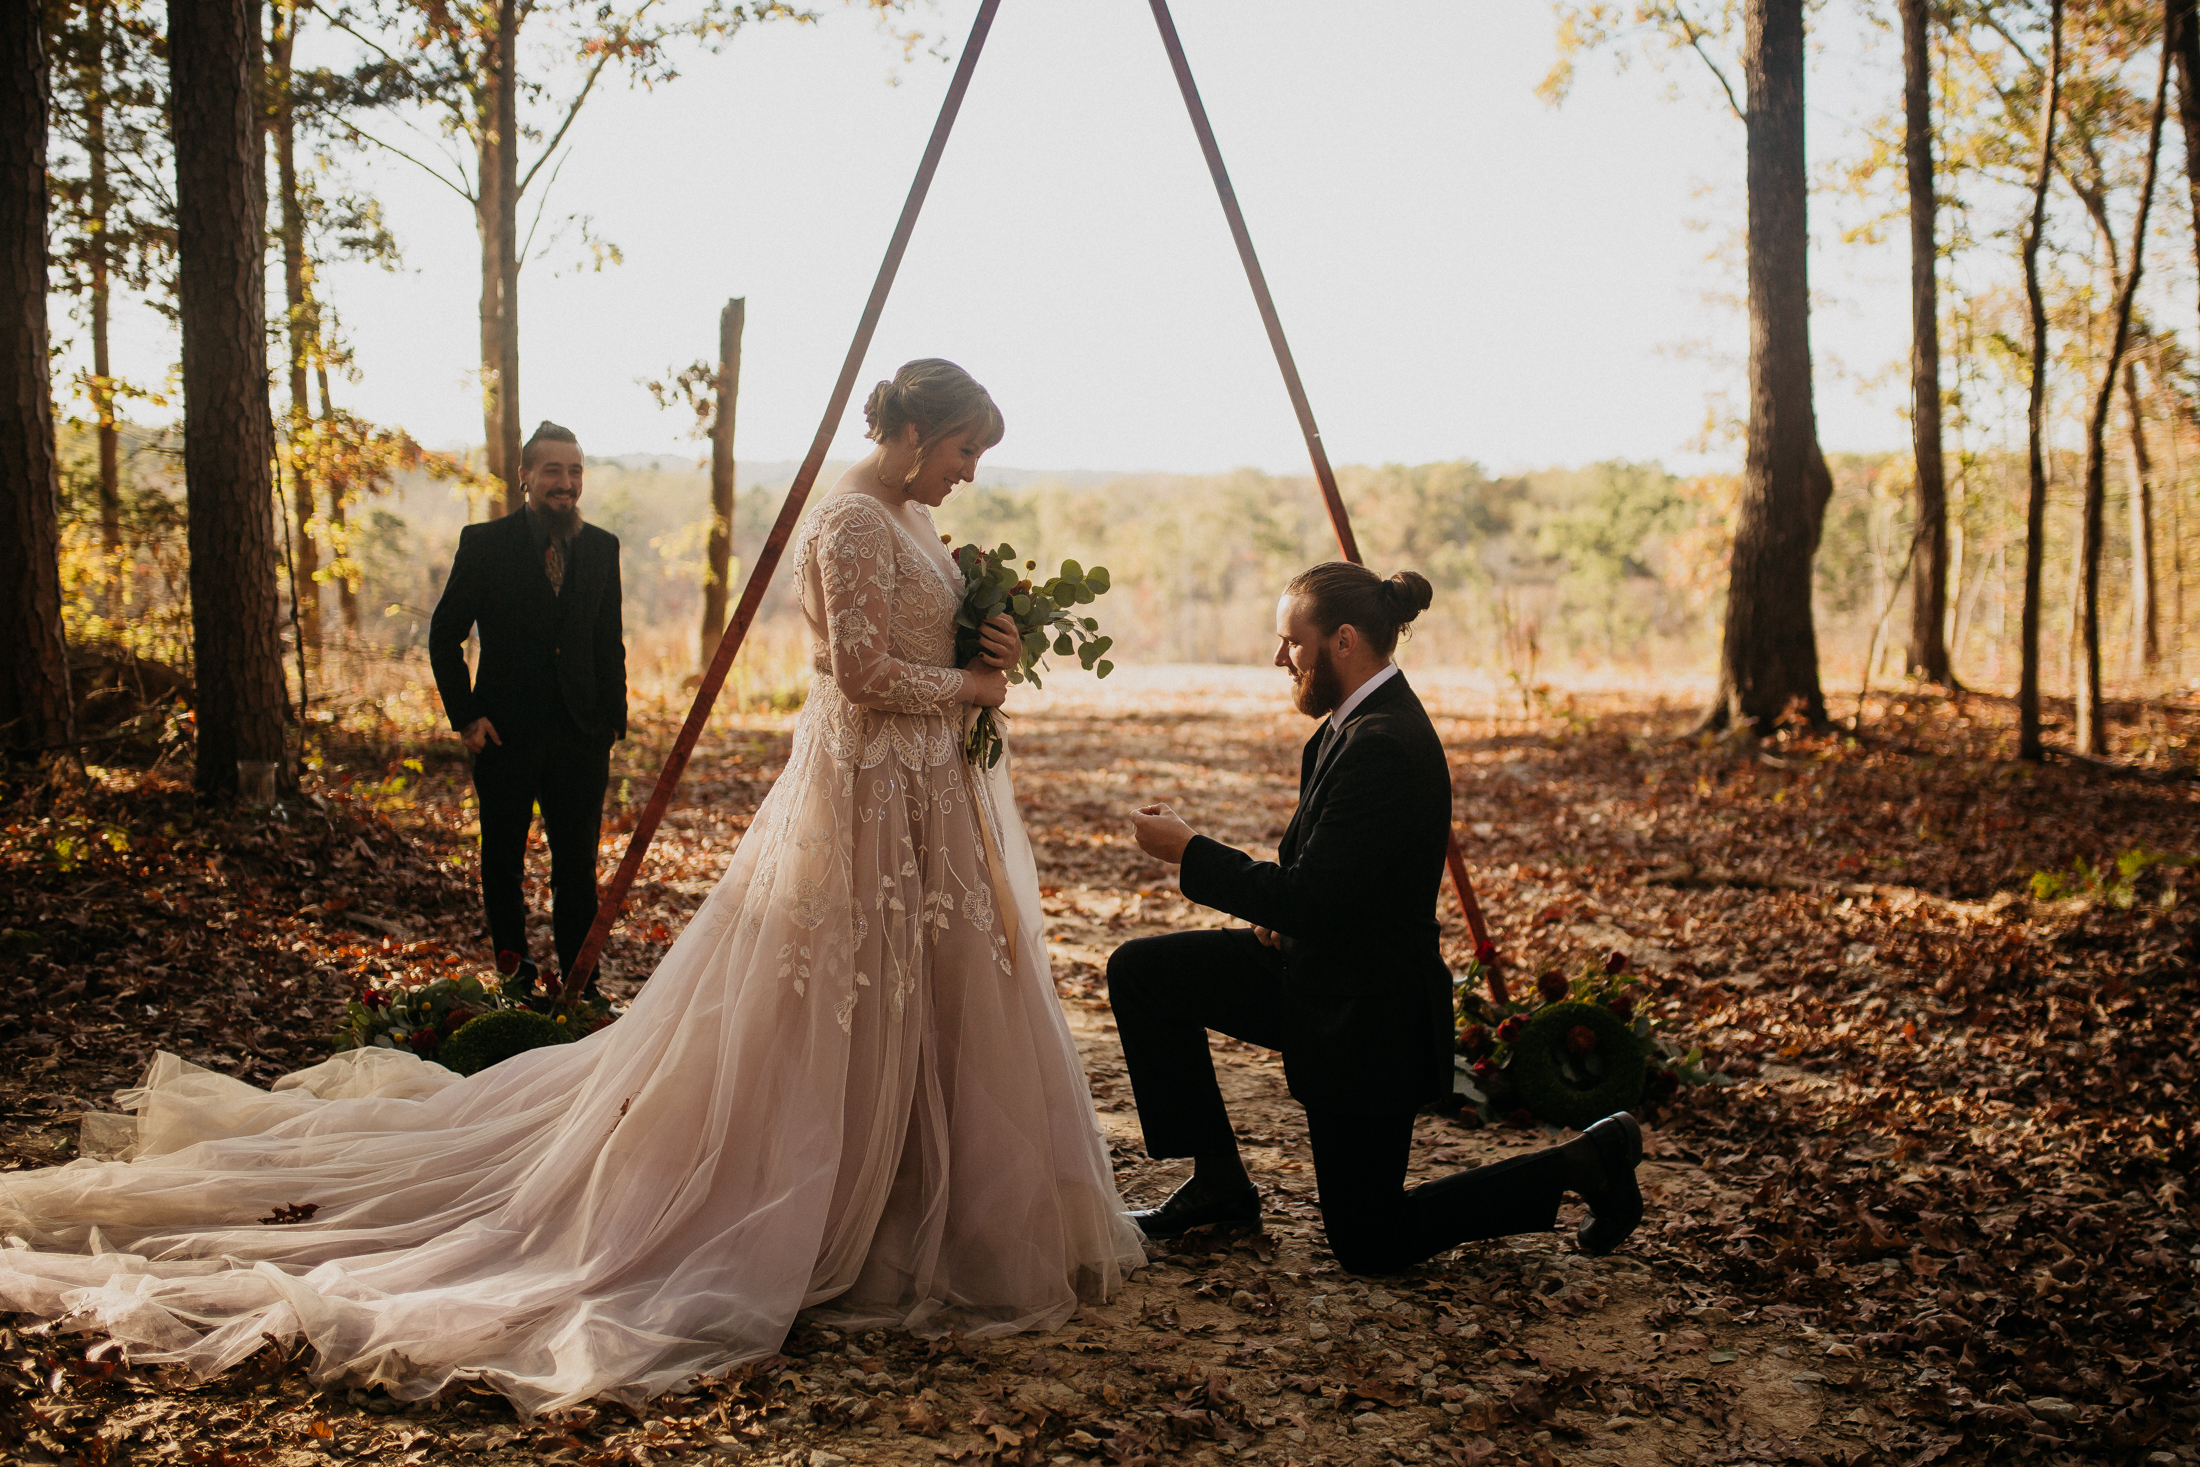 The Hatches | Memphis Tennessee Wedding and Elopement Photographer | 2016 Year in Review | the-hatches-memphis-tennessee-utah-colorado-arizona-washington-wedding-elopement-photographer-unique-dark-and-moody-creative-urban-journalistic